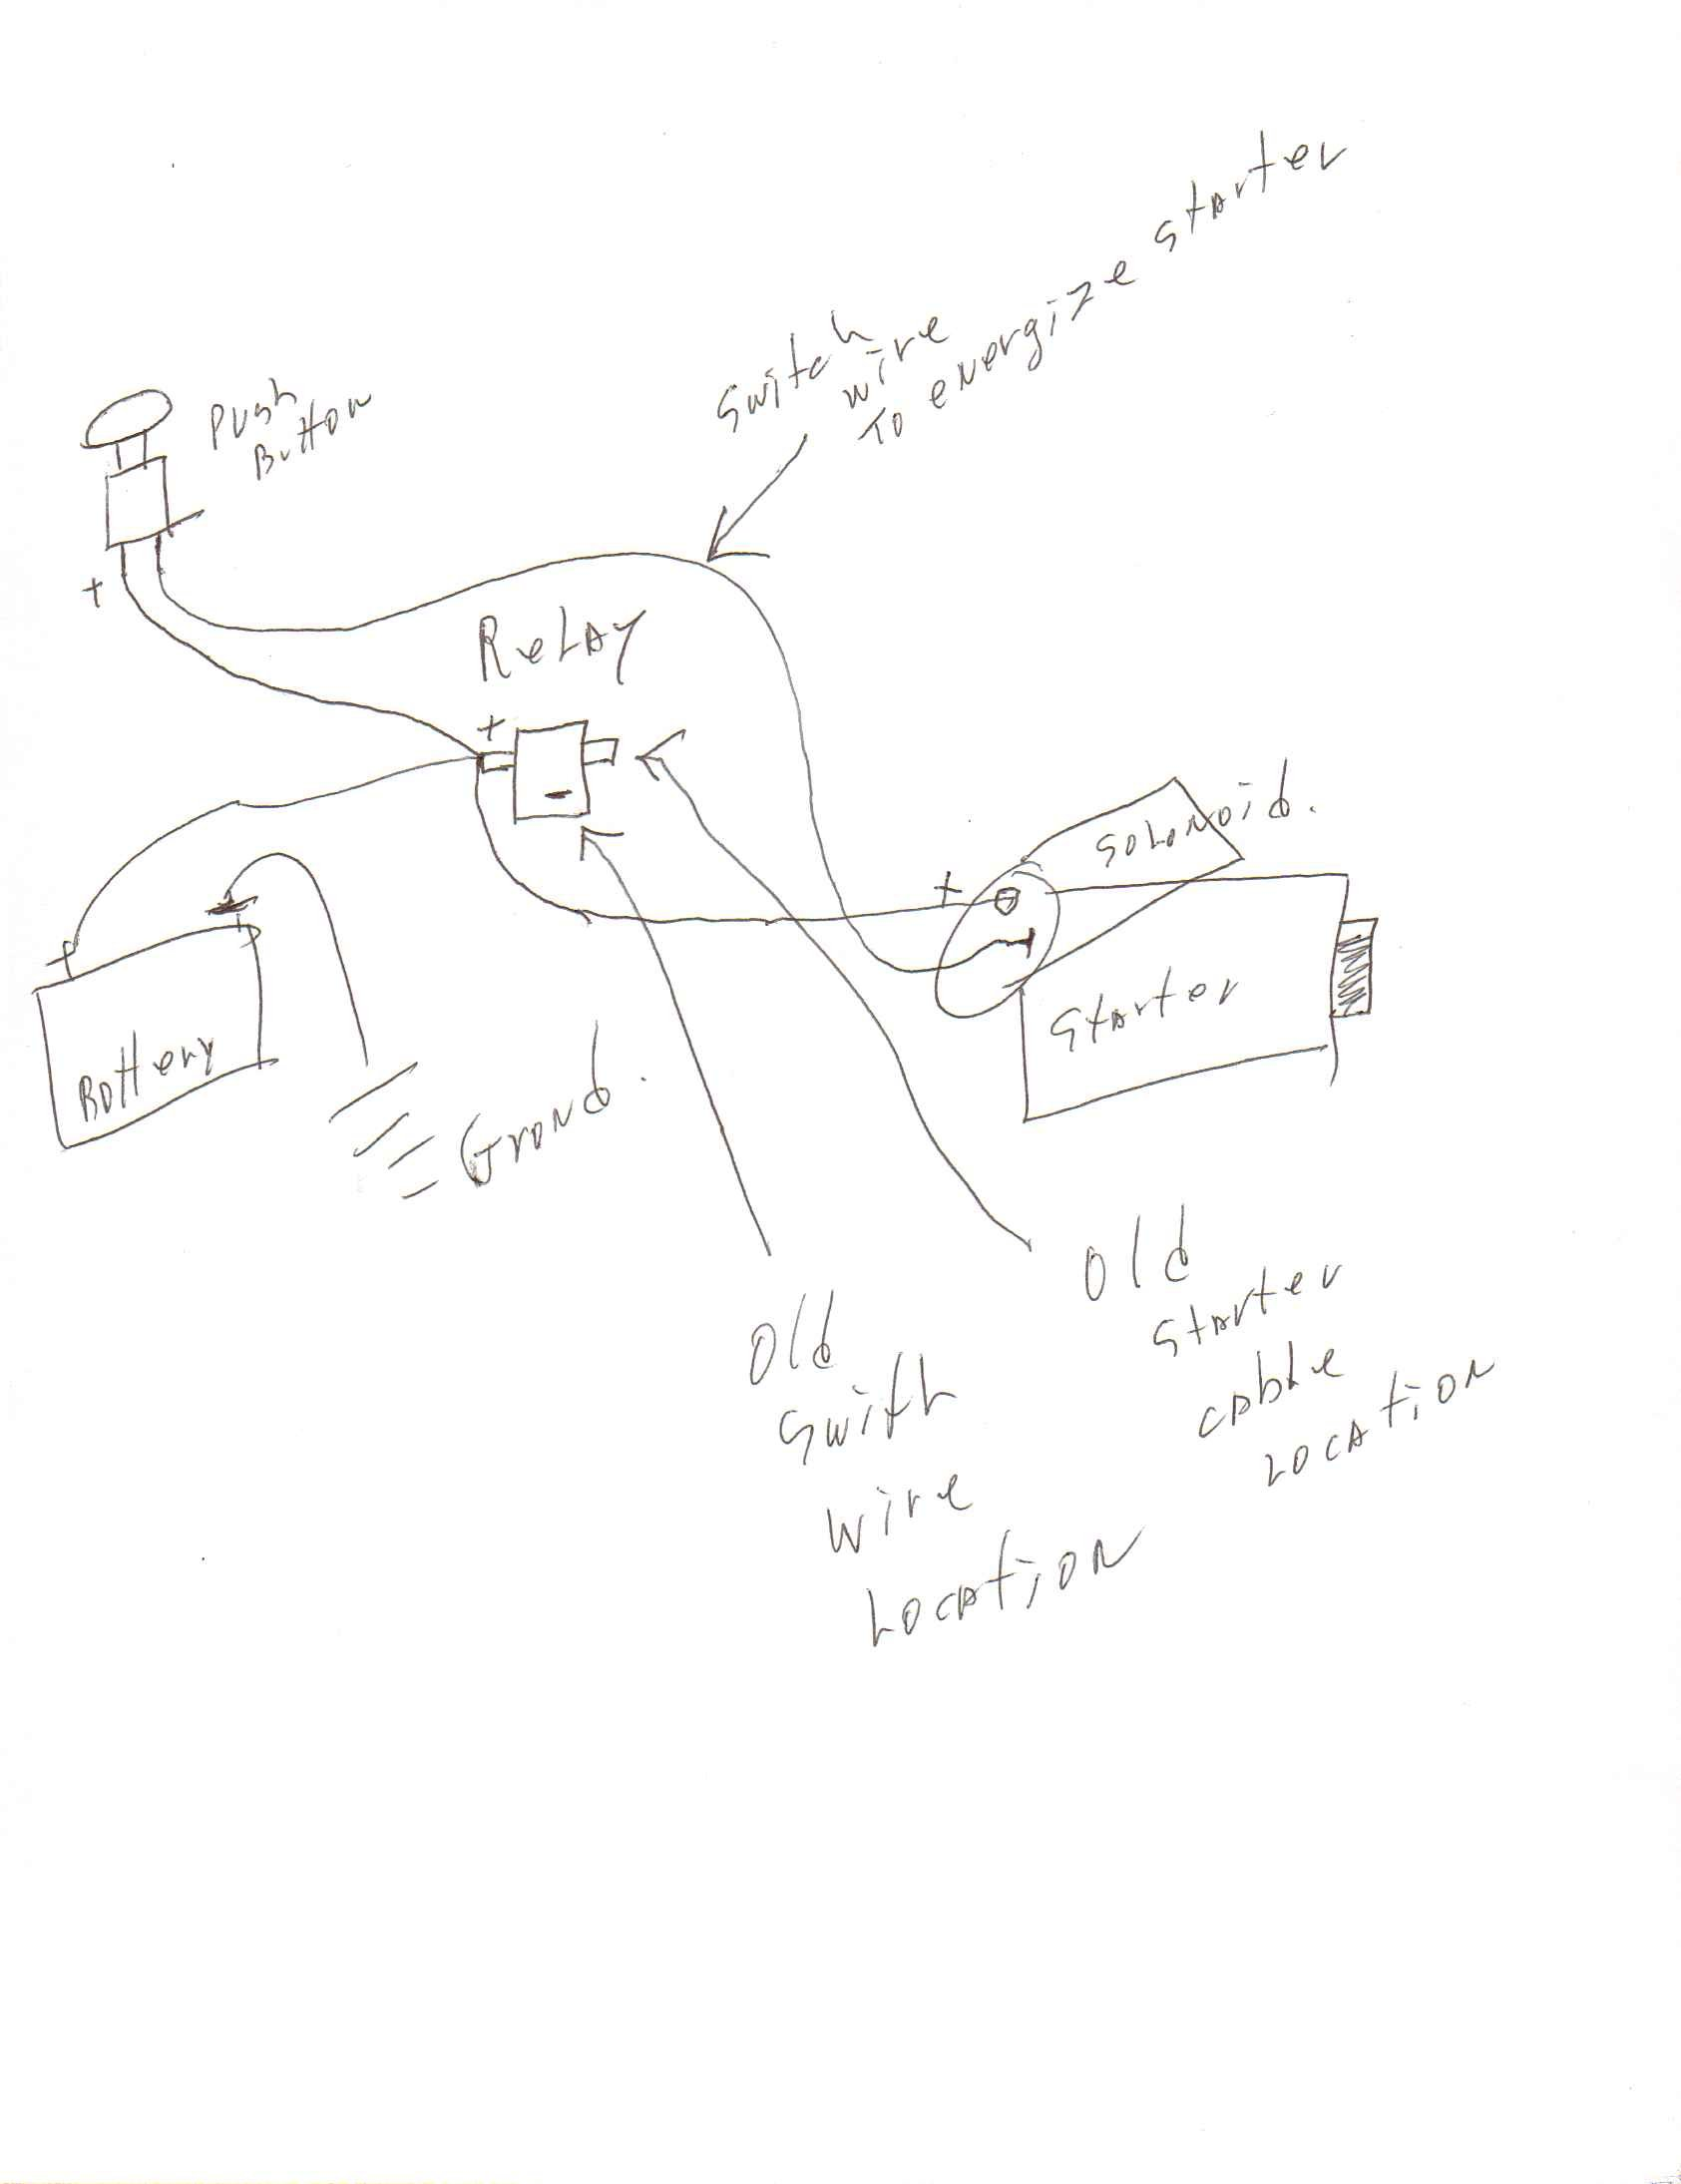 wiring diagram for ford 5000 tractor the wiring diagram ford 3000 tractor i have a ford 3000 diesel tractor that had wiring diagram